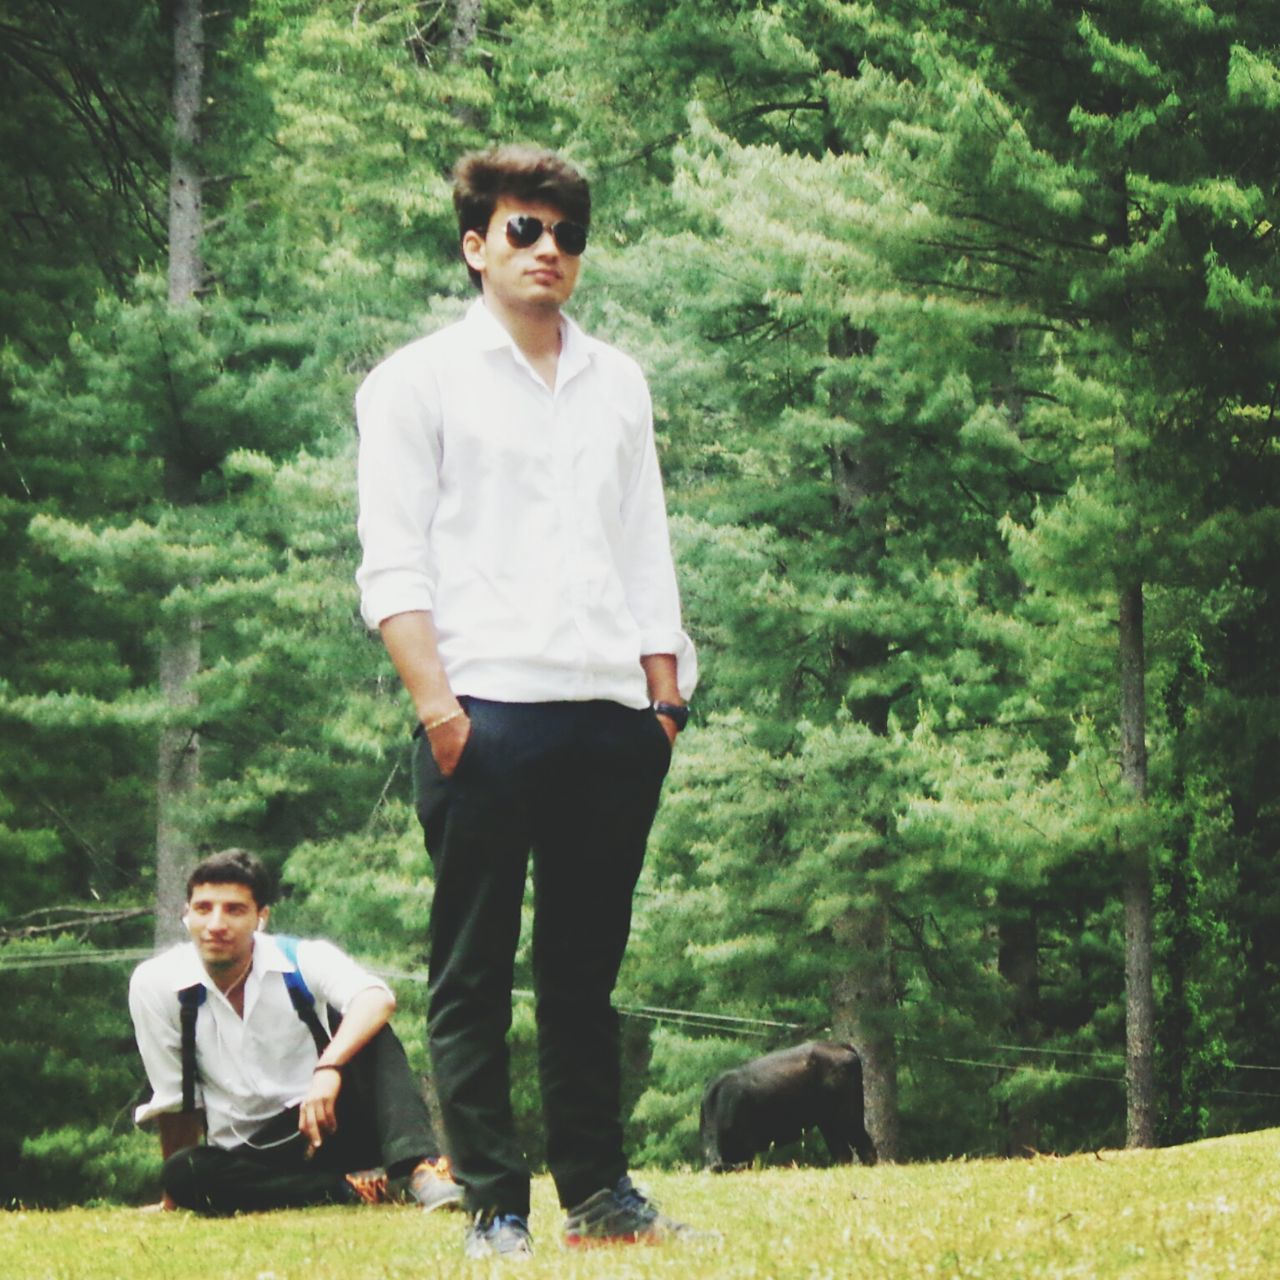 real people, full length, tree, casual clothing, sunglasses, front view, mammal, young adult, looking at camera, lifestyles, standing, forest, animal themes, nature, leisure activity, one animal, young women, portrait, domestic animals, outdoors, day, one person, growth, grass, smiling, happiness, boys, pets, friendship